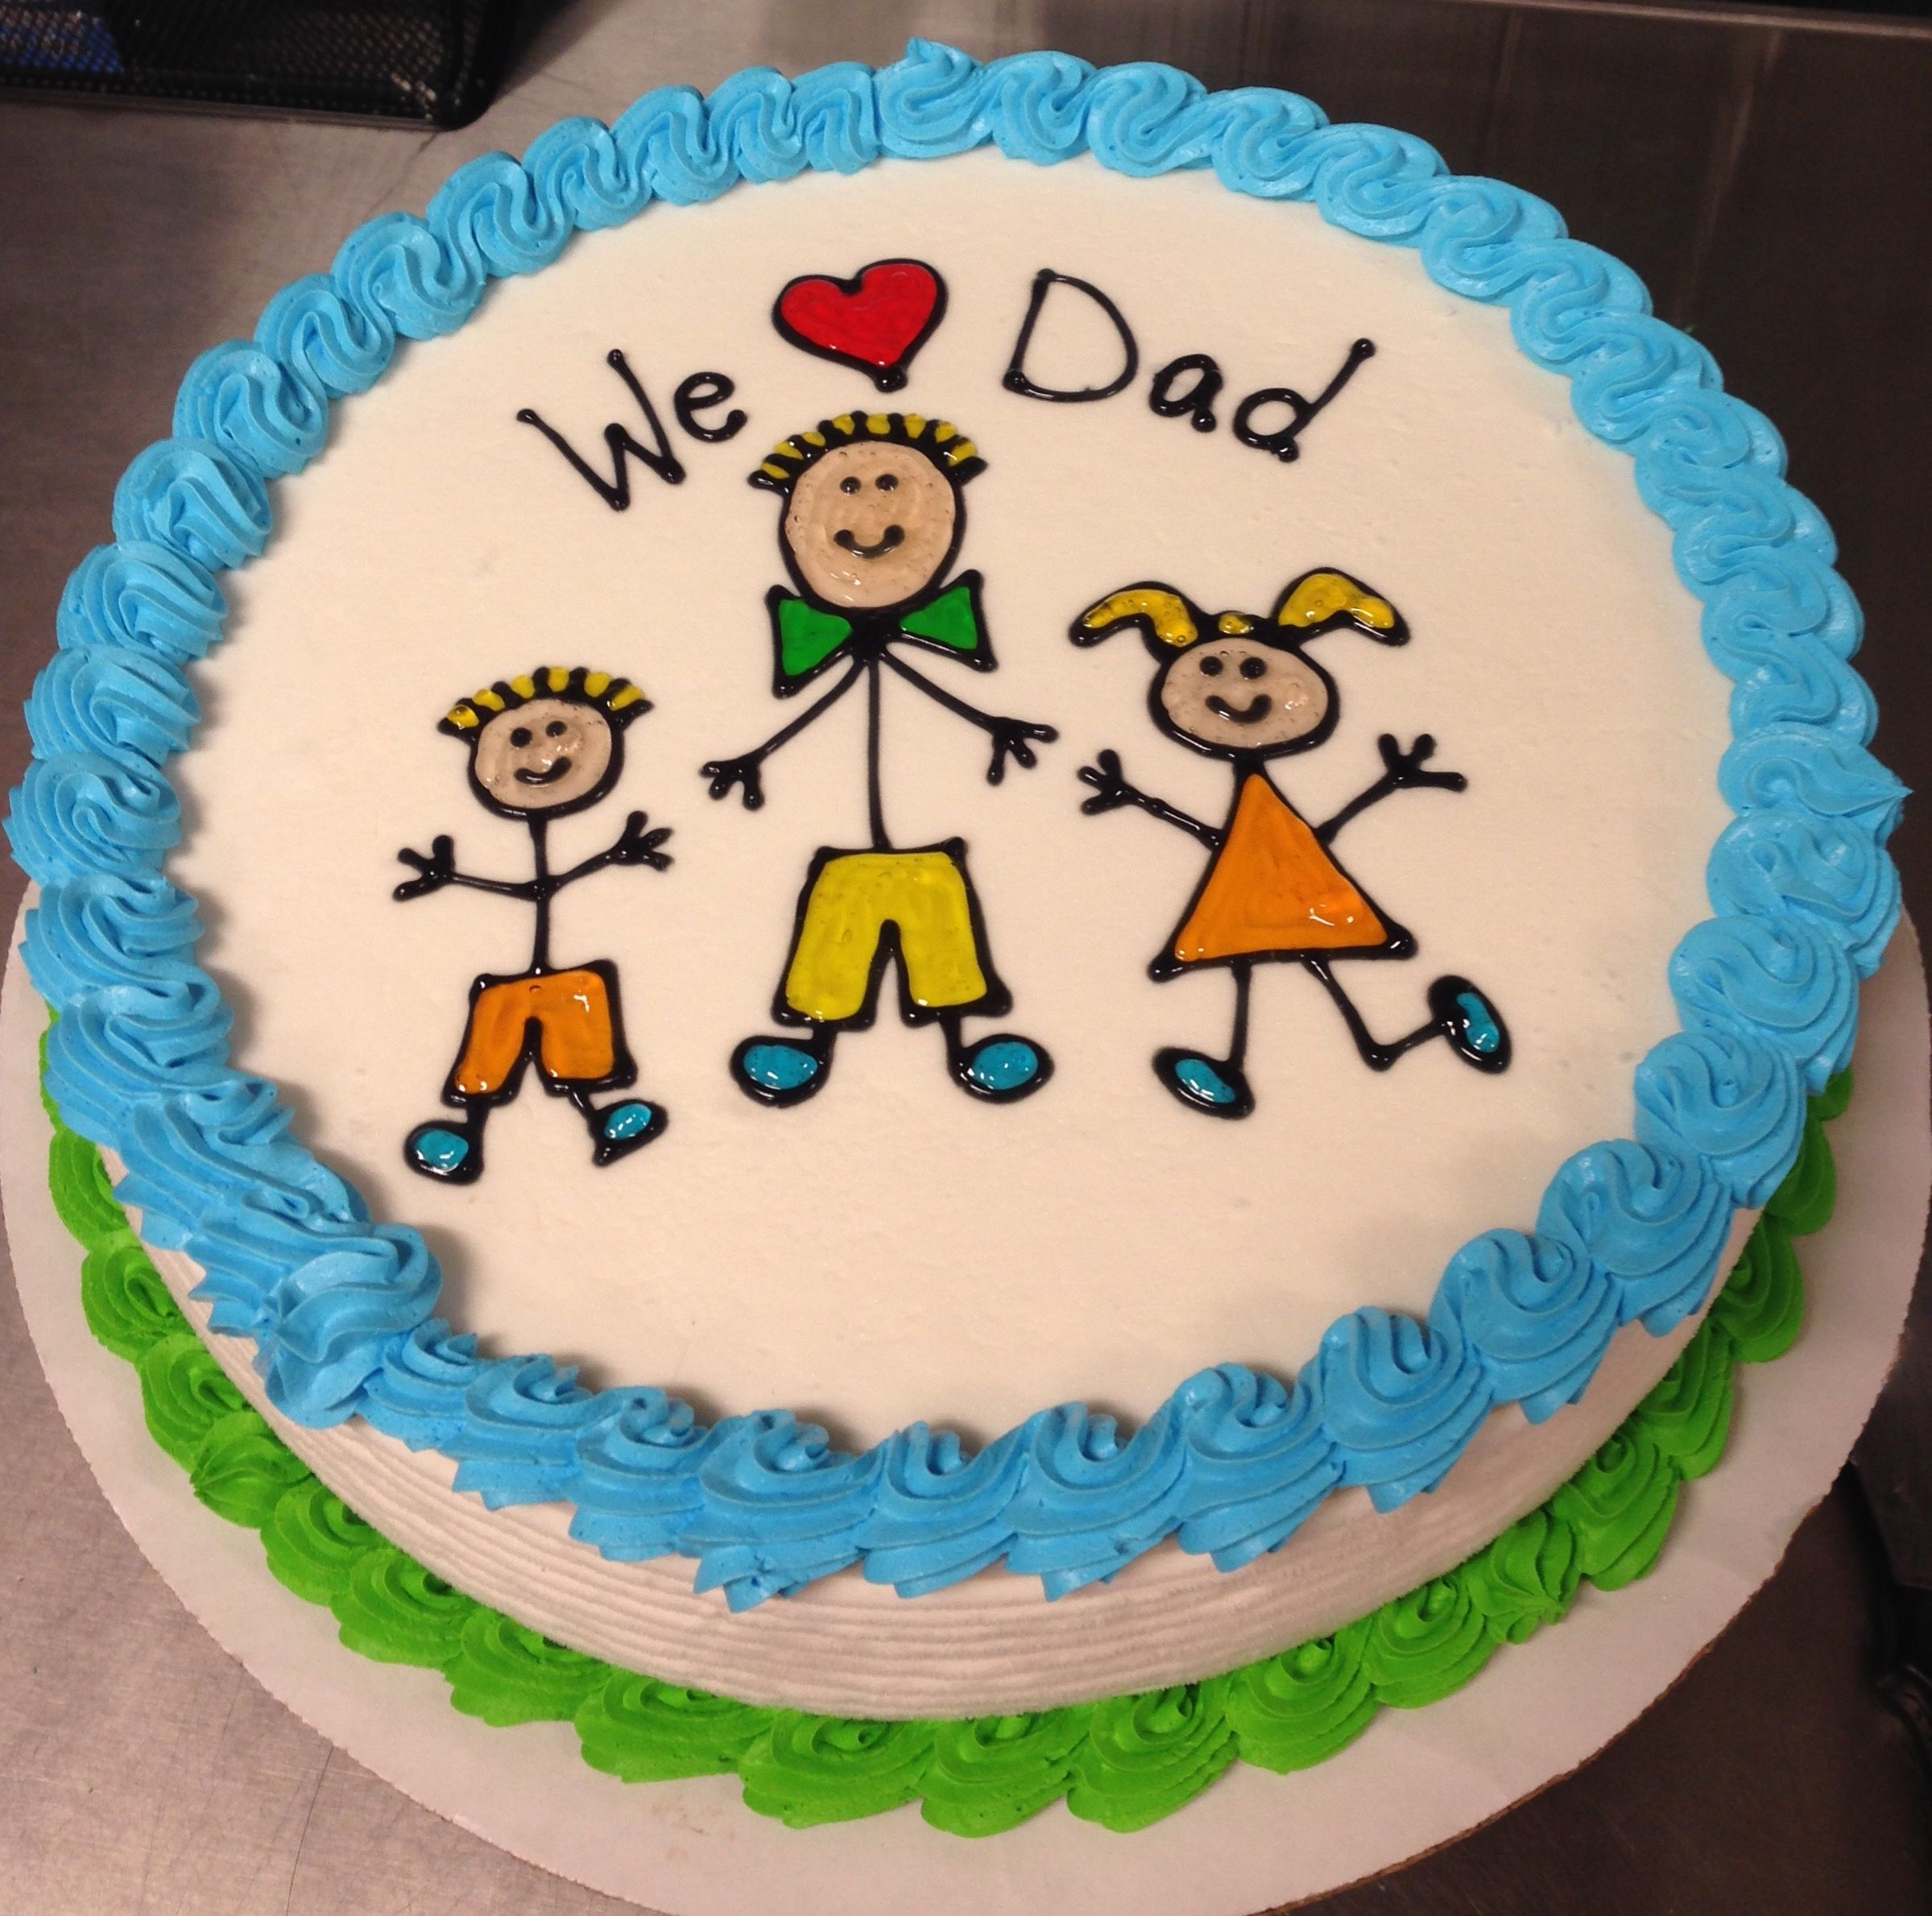 Father S Day Dq Ice Cream Cake With Images Dad Birthday Cakes